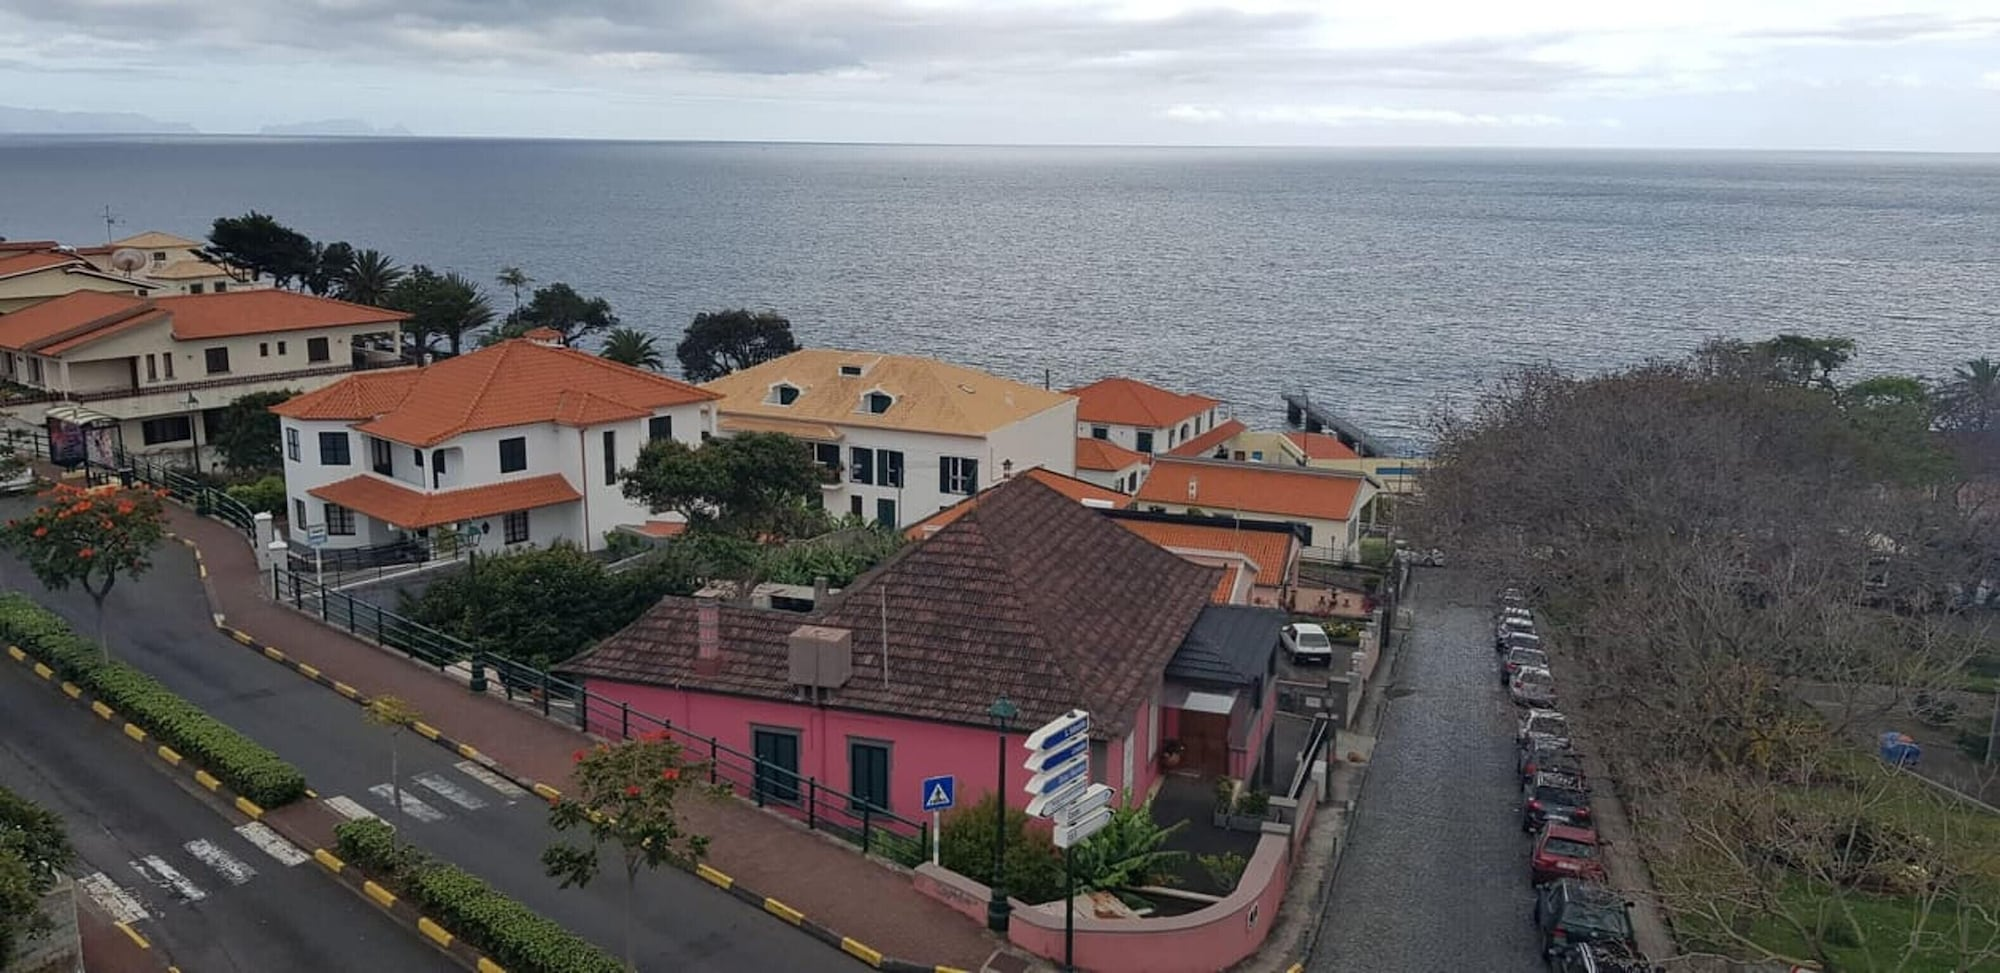 Apartment With one Bedroom in Santa Cruz, With Wonderful sea View, Enclosed Garden and Wifi - 1 km From the Beach, Santa Cruz